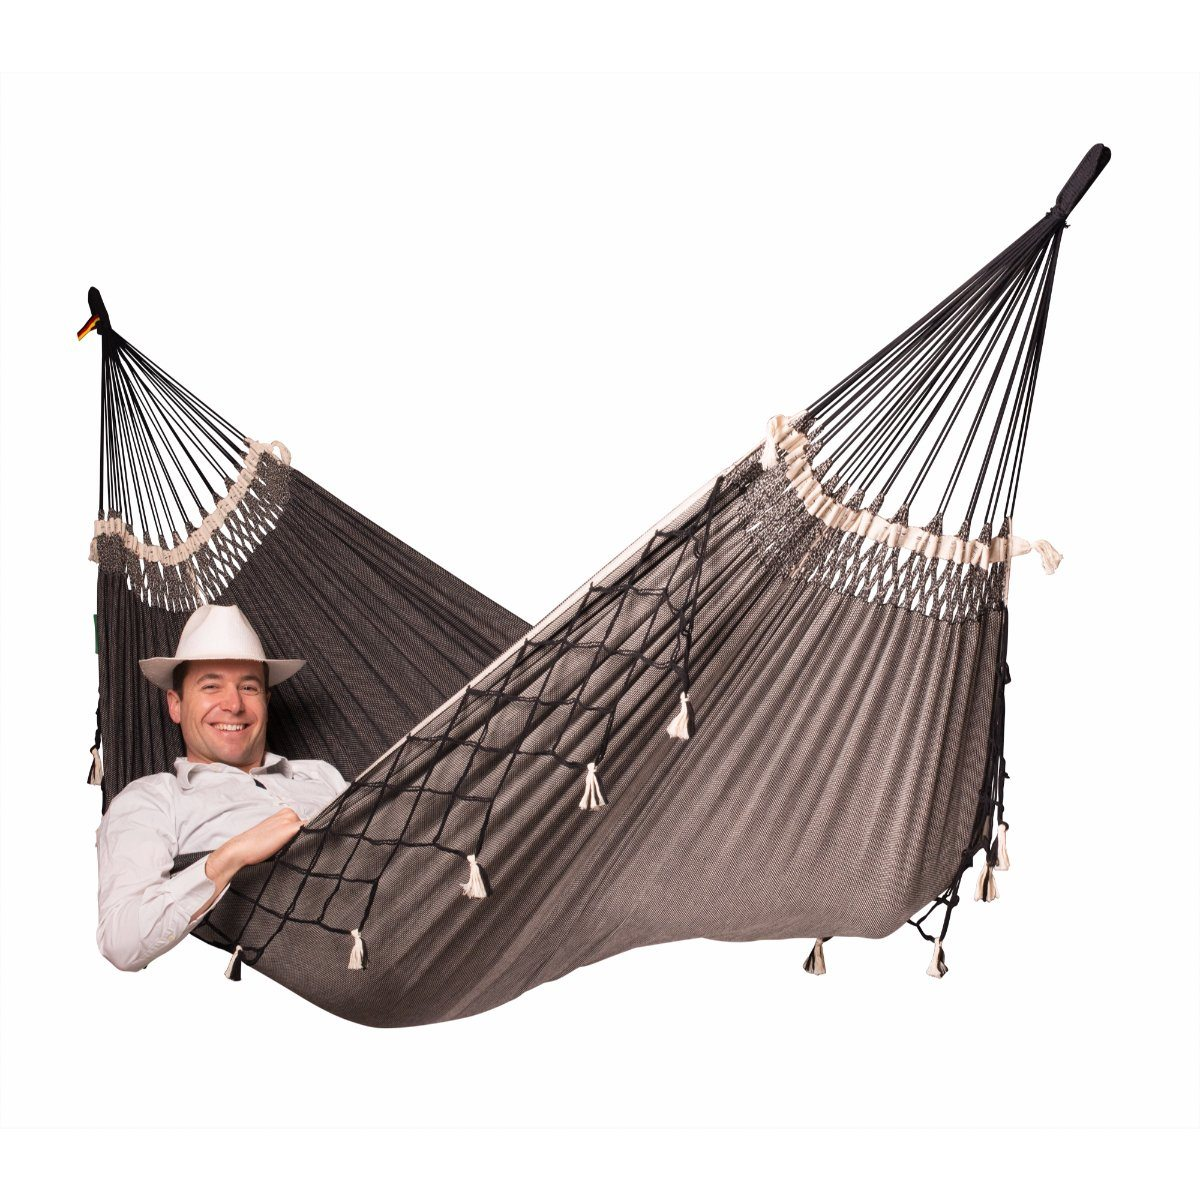 Black cotton hammock